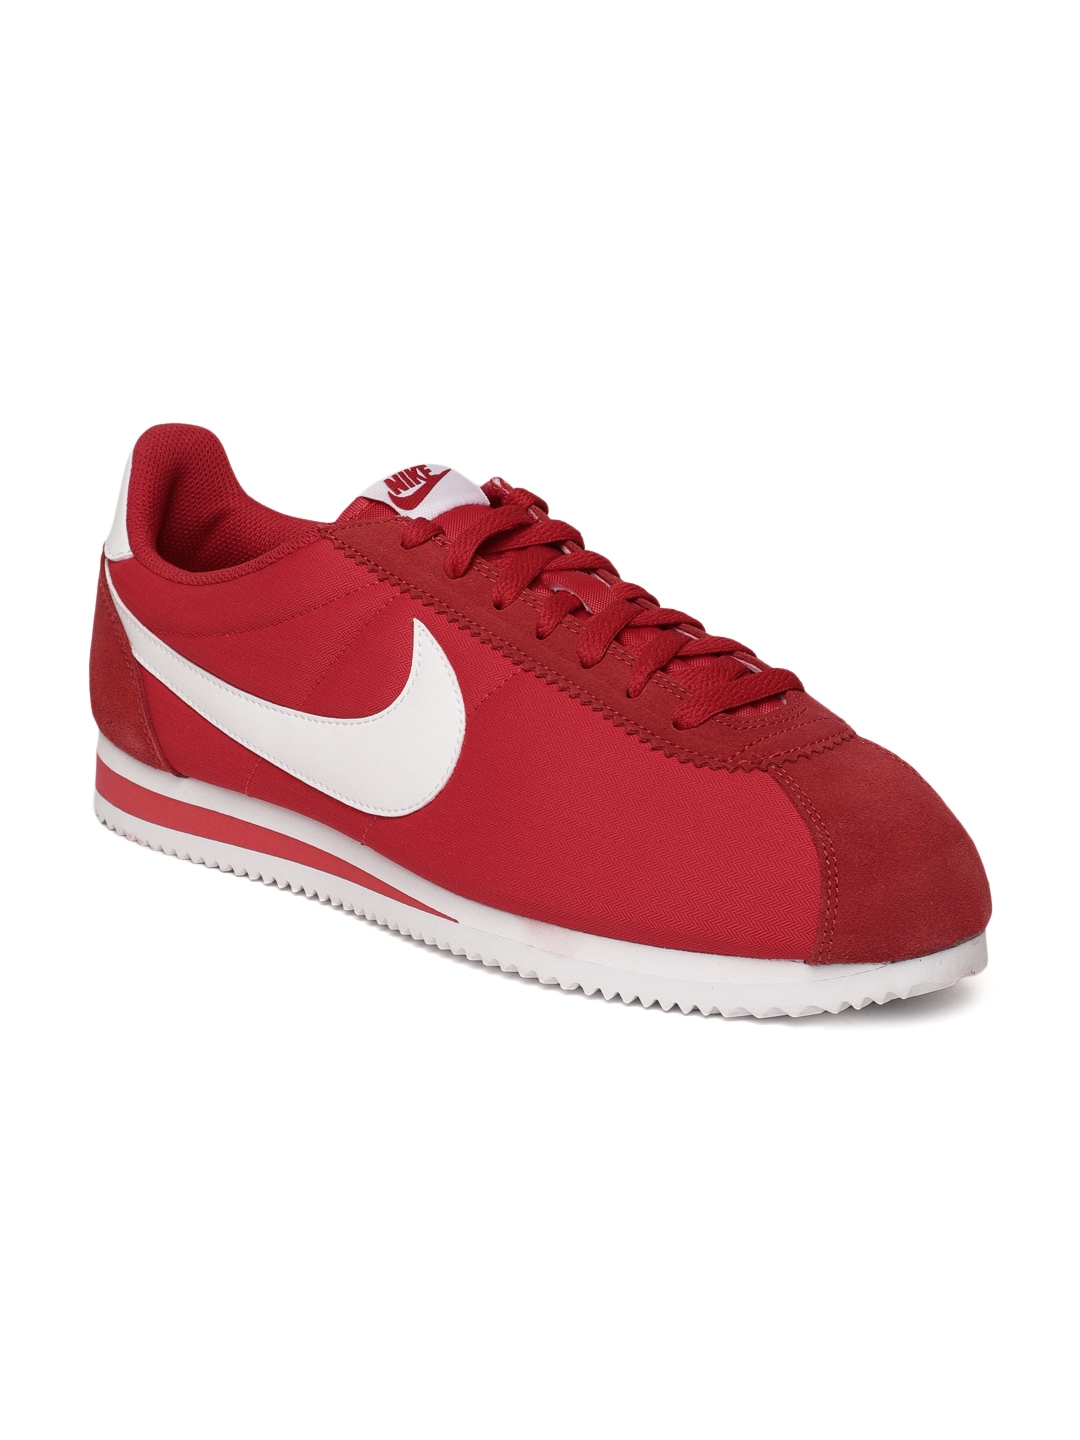 f2ac21617e9d4 Buy Nike Men Red Classic Cortez Nylon Casual Shoes - Casual Shoes ...